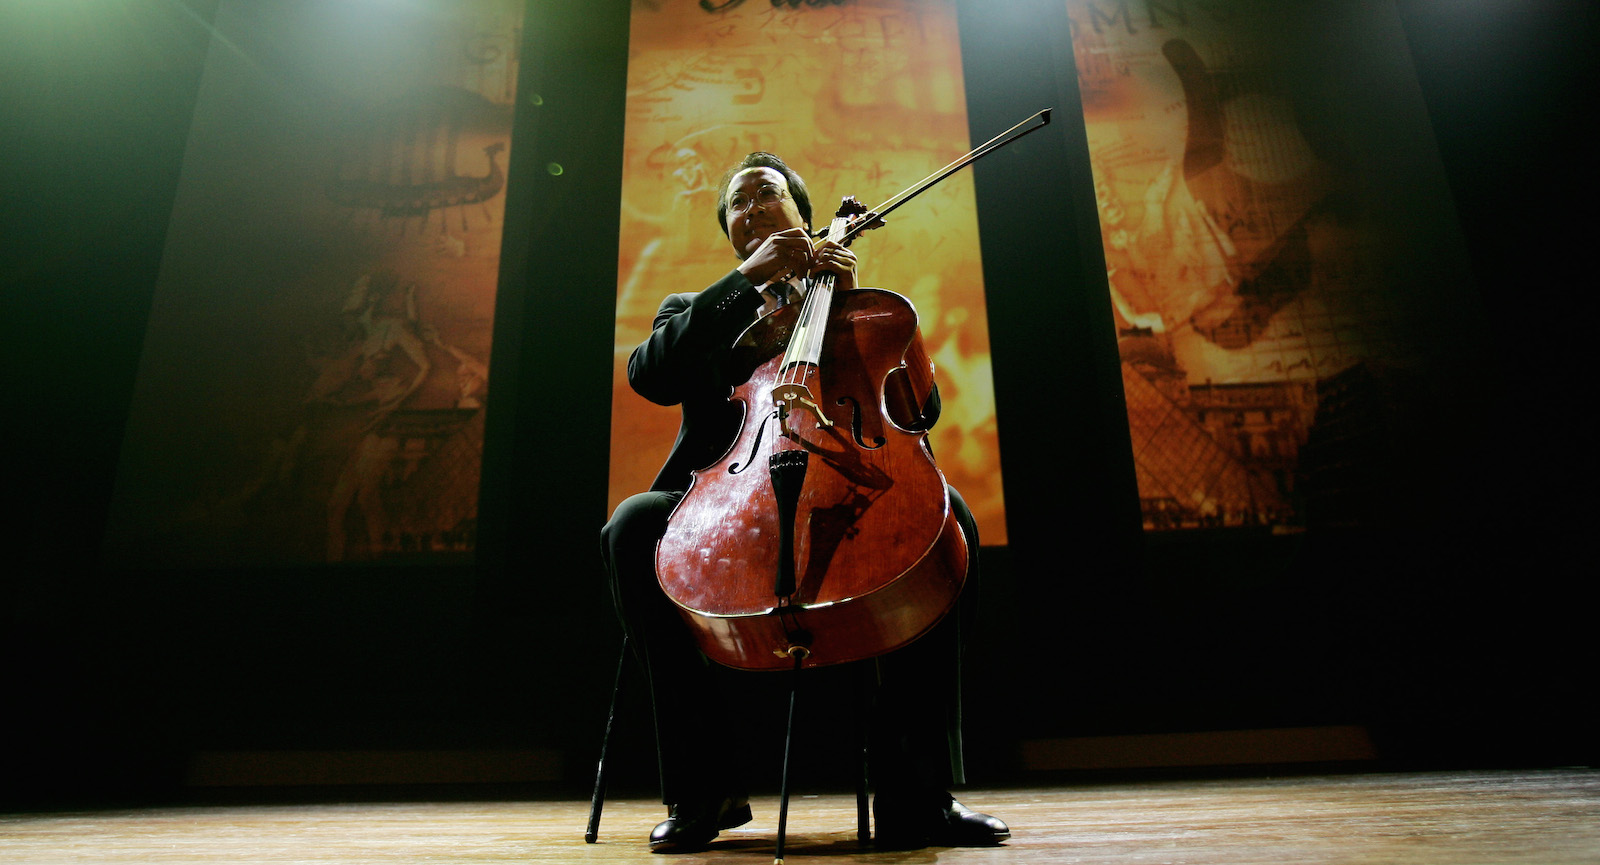 """Cellist Yo-Yo Ma preforms during the Dan David Prize award ceremony in Tel Aviv's University, Israel Sunday, May 21 2006.Word renowned cellist Yo-Yo Ma received a prestigious and valuable prize on Sunday recognizing his """"Silk Road Project"""" for its contribution to international cultural understanding. The Dan David Prize Ma won is worth $1 million. In his acceptance speech, he said he would share it with the musicians, board members and staff of the project. (AP Photo/Ariel Schalit)"""